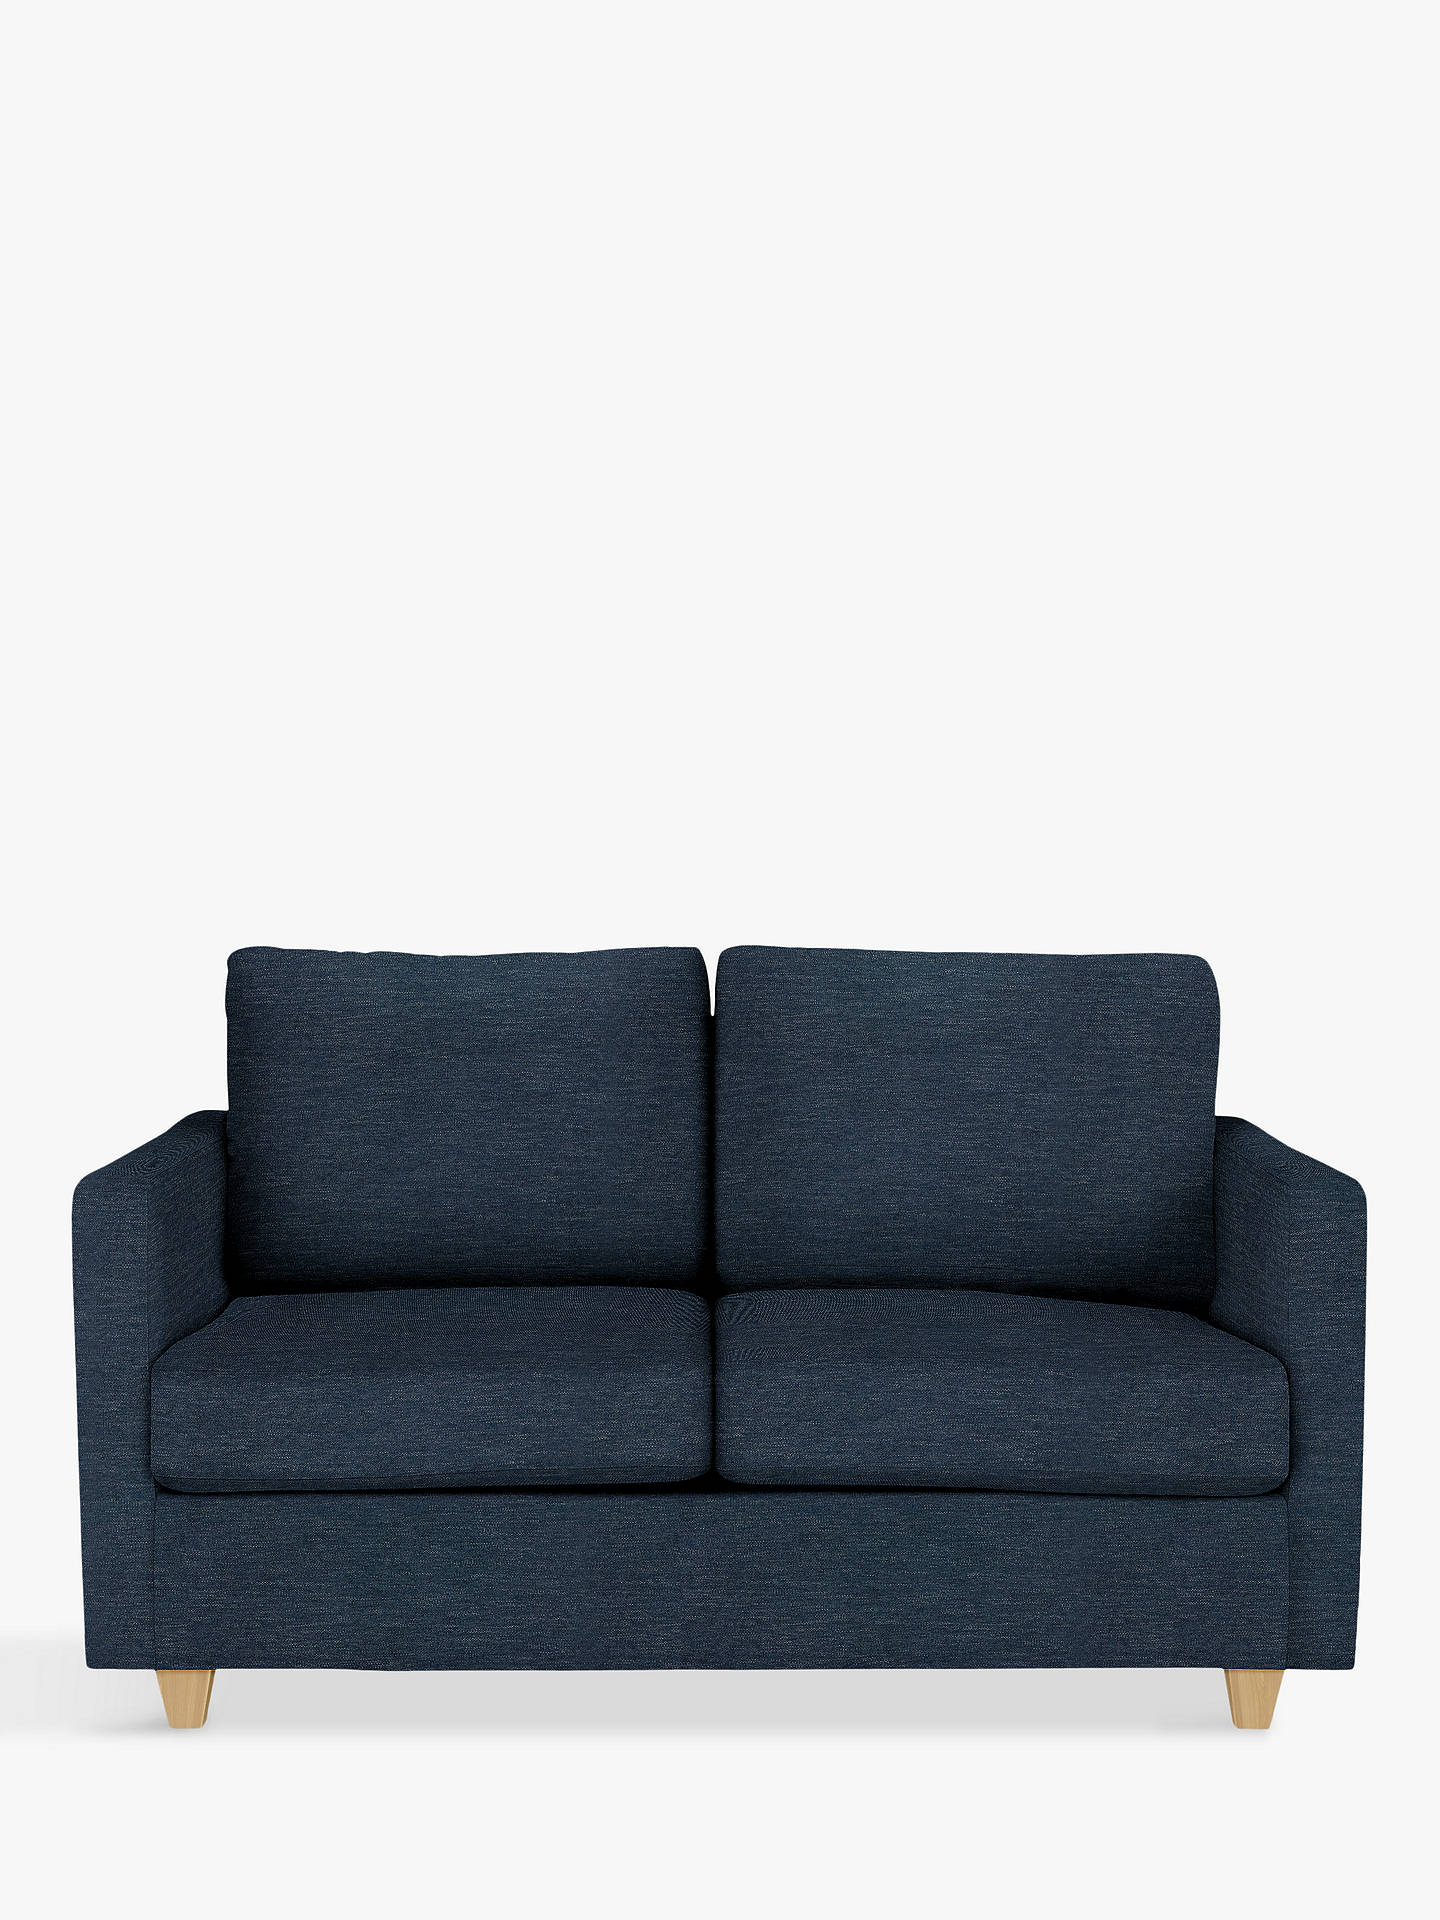 Outstanding John Lewis Partners Barlow Small 2 Seater Sofa Bed With Pocket Sprung Mattress Erin Midnight Alphanode Cool Chair Designs And Ideas Alphanodeonline